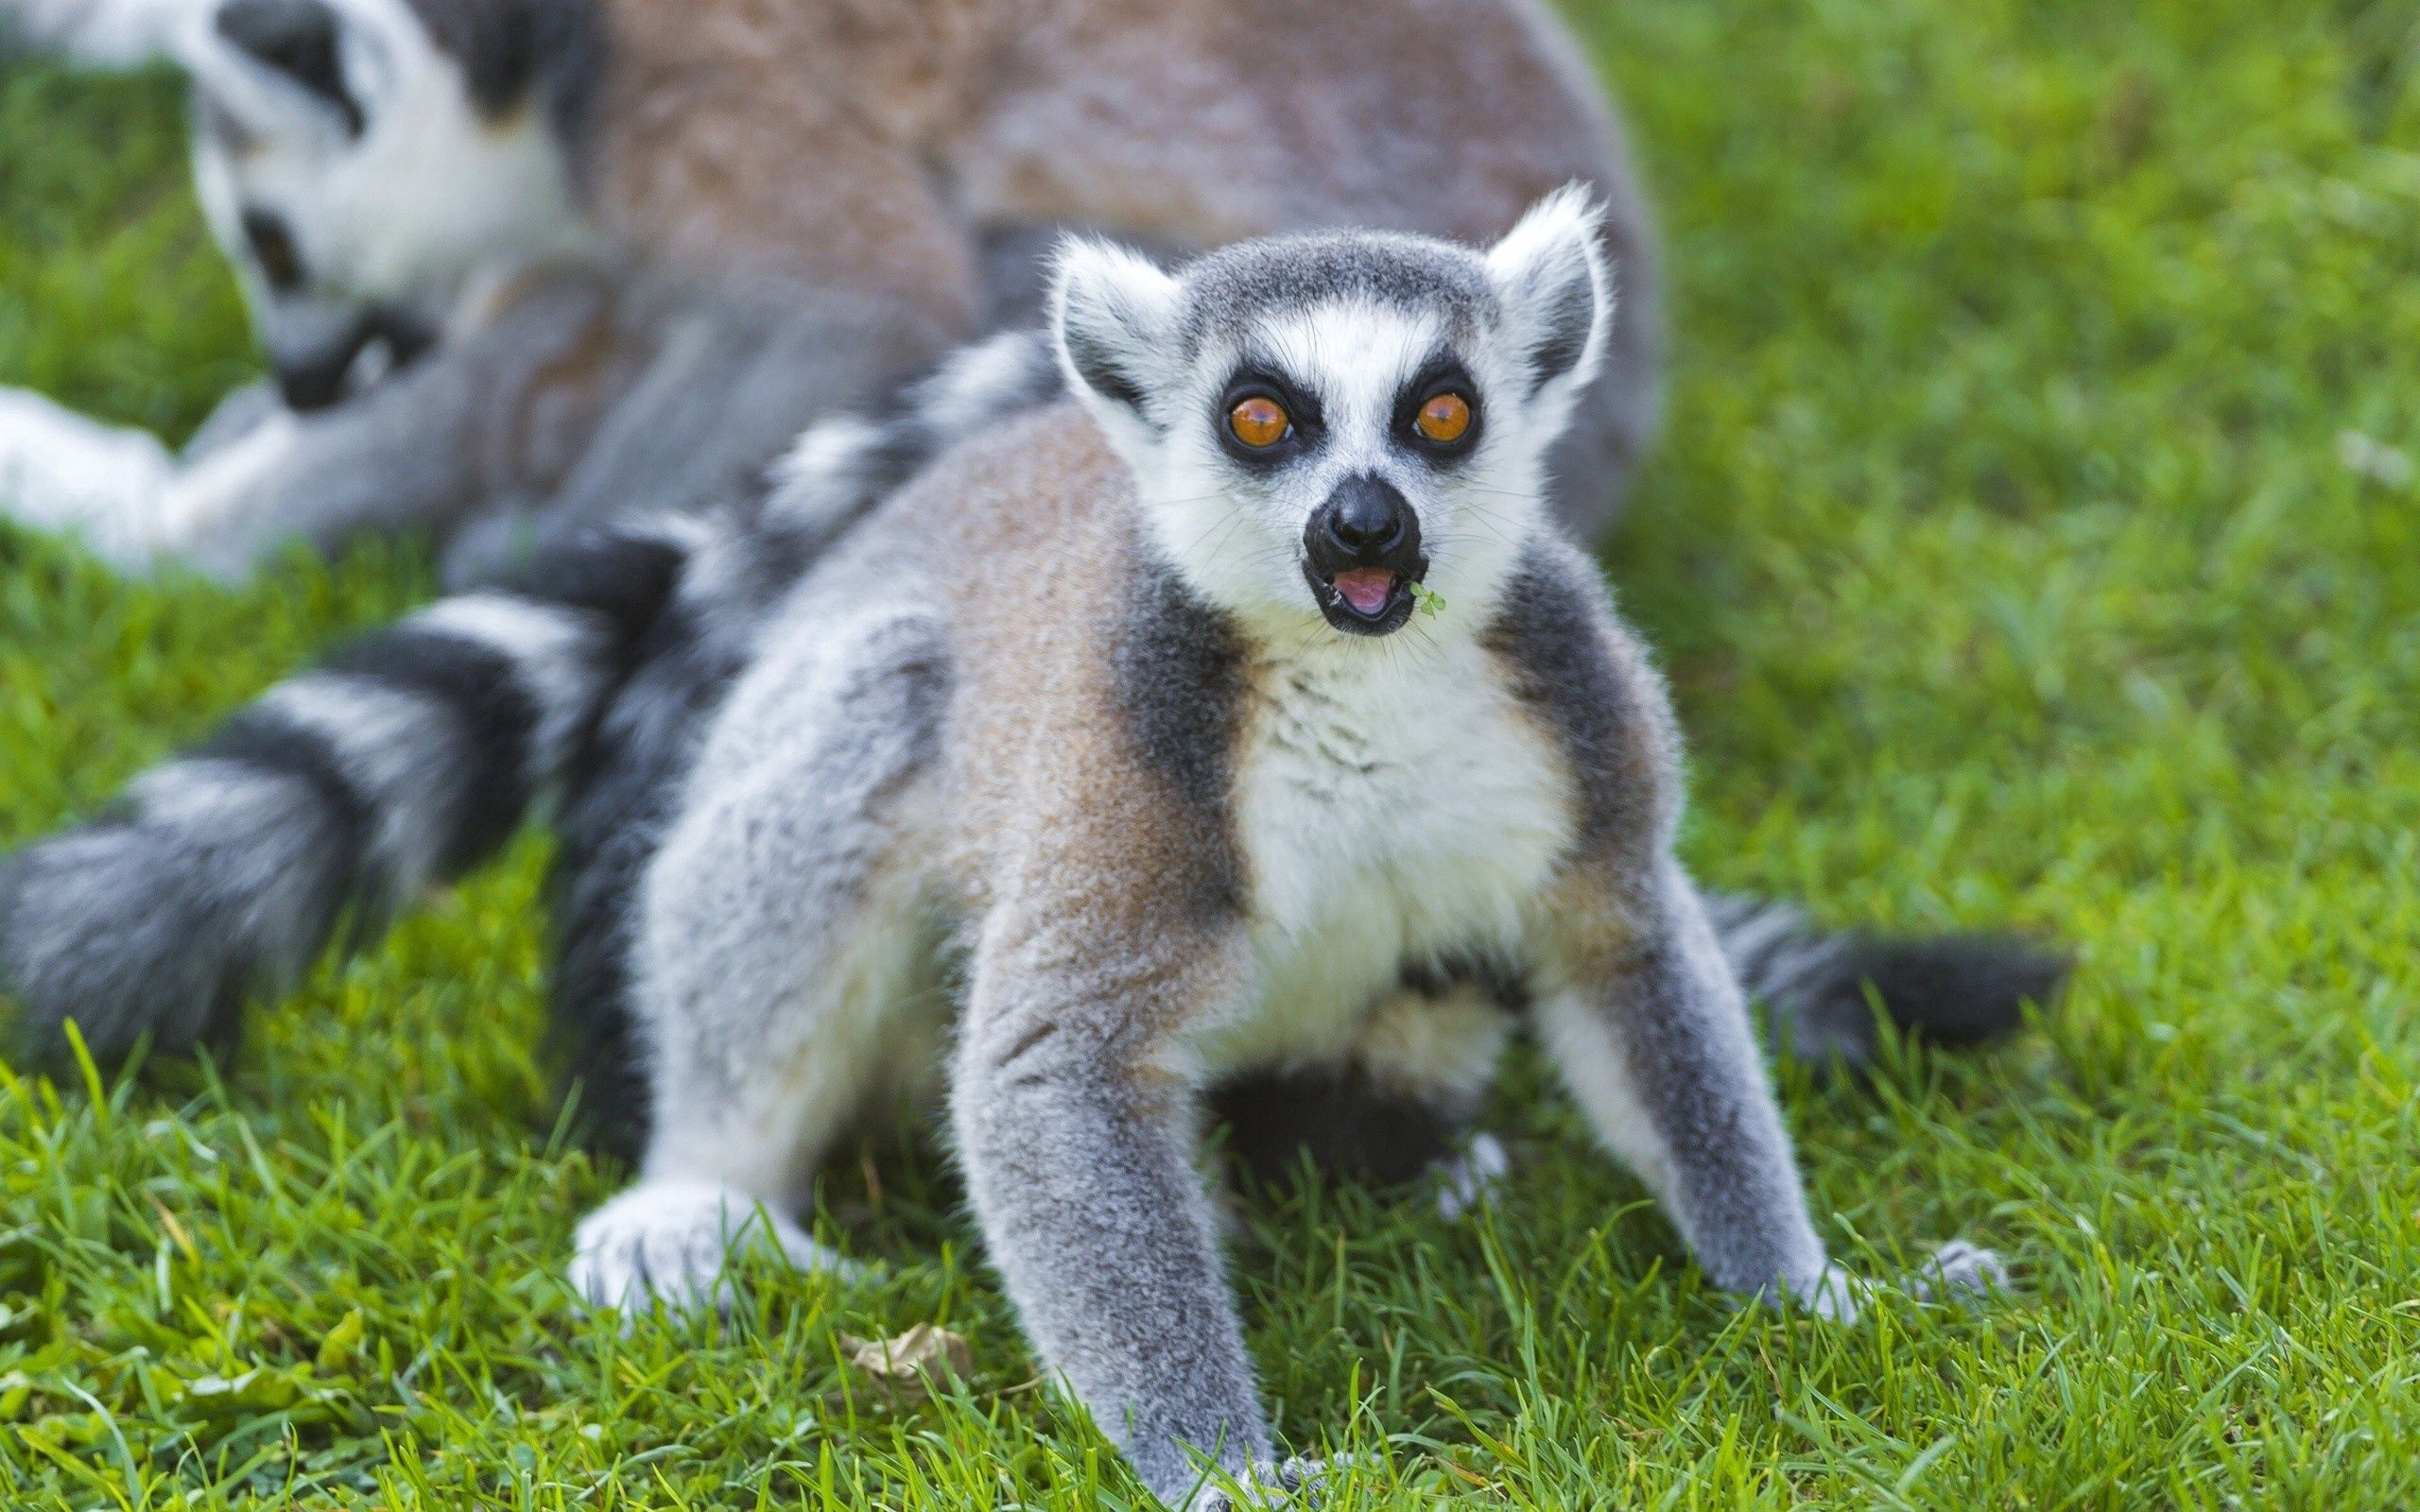 129215 download wallpaper Animals, Lemur, Color, Sight, Opinion, Grass screensavers and pictures for free